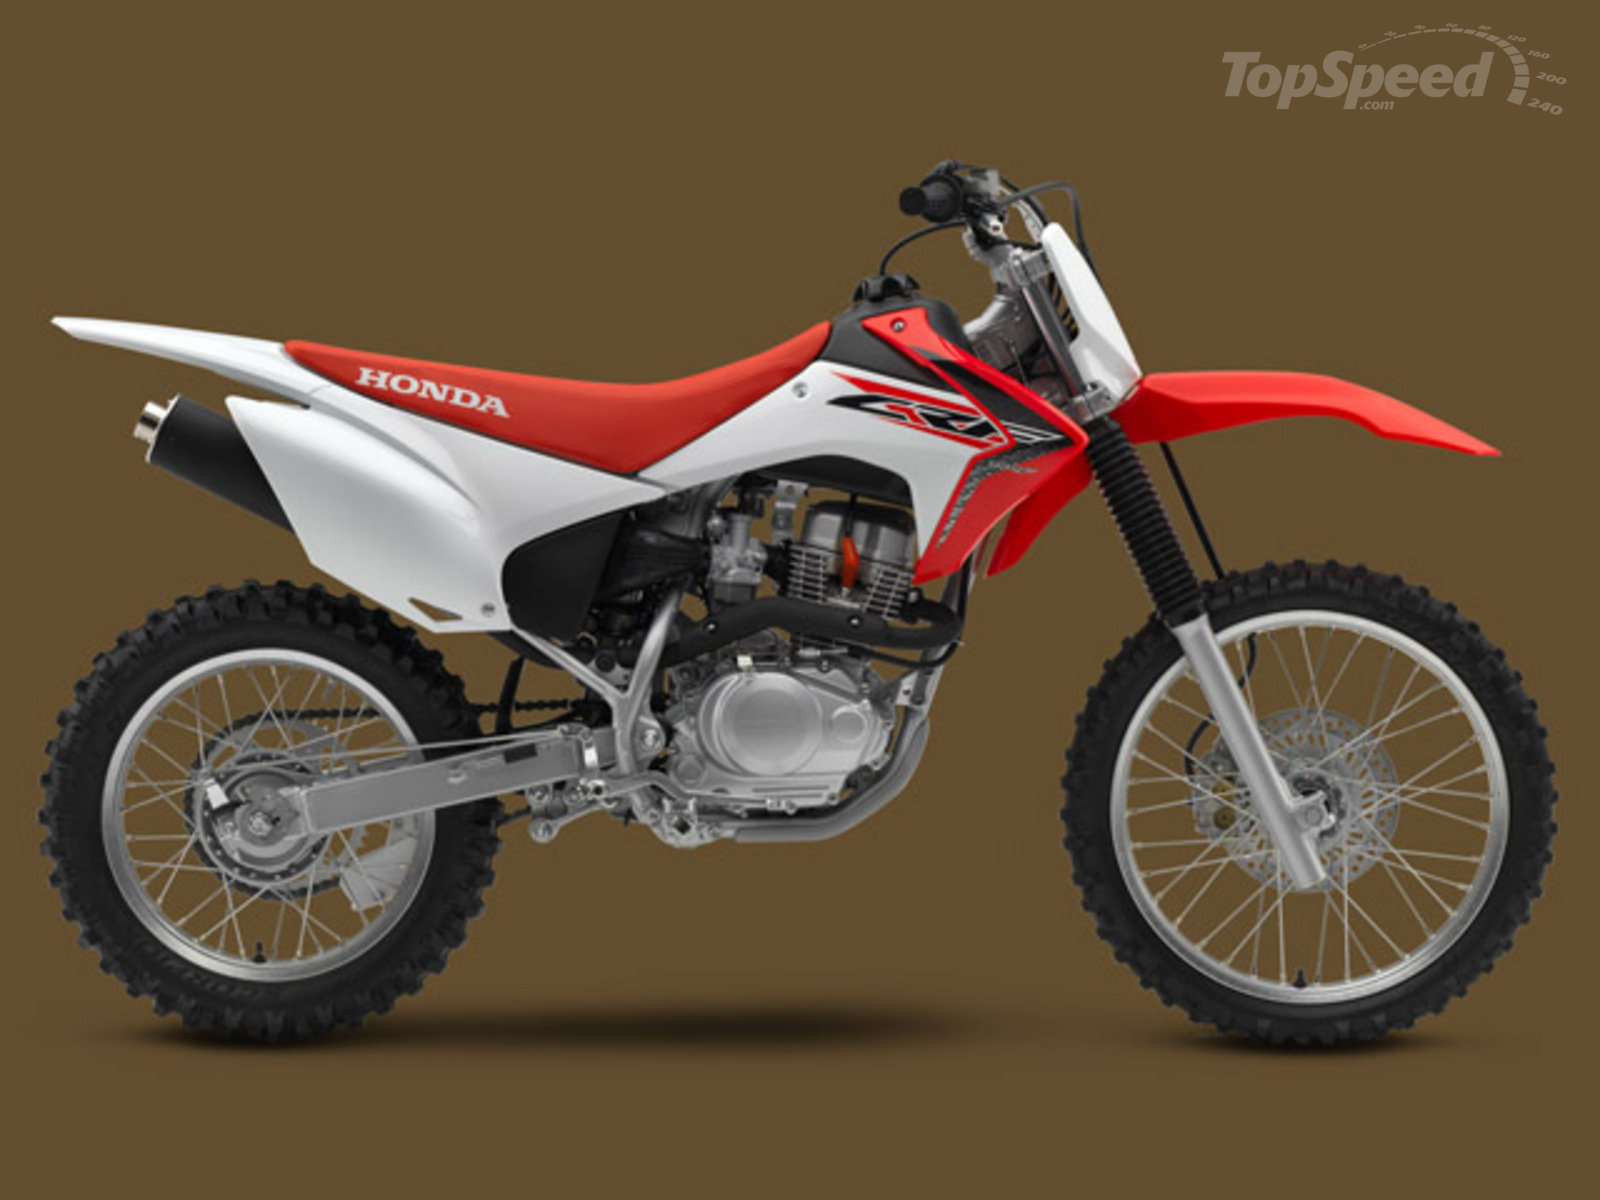 2015 Honda Crf150f Review Top Speed